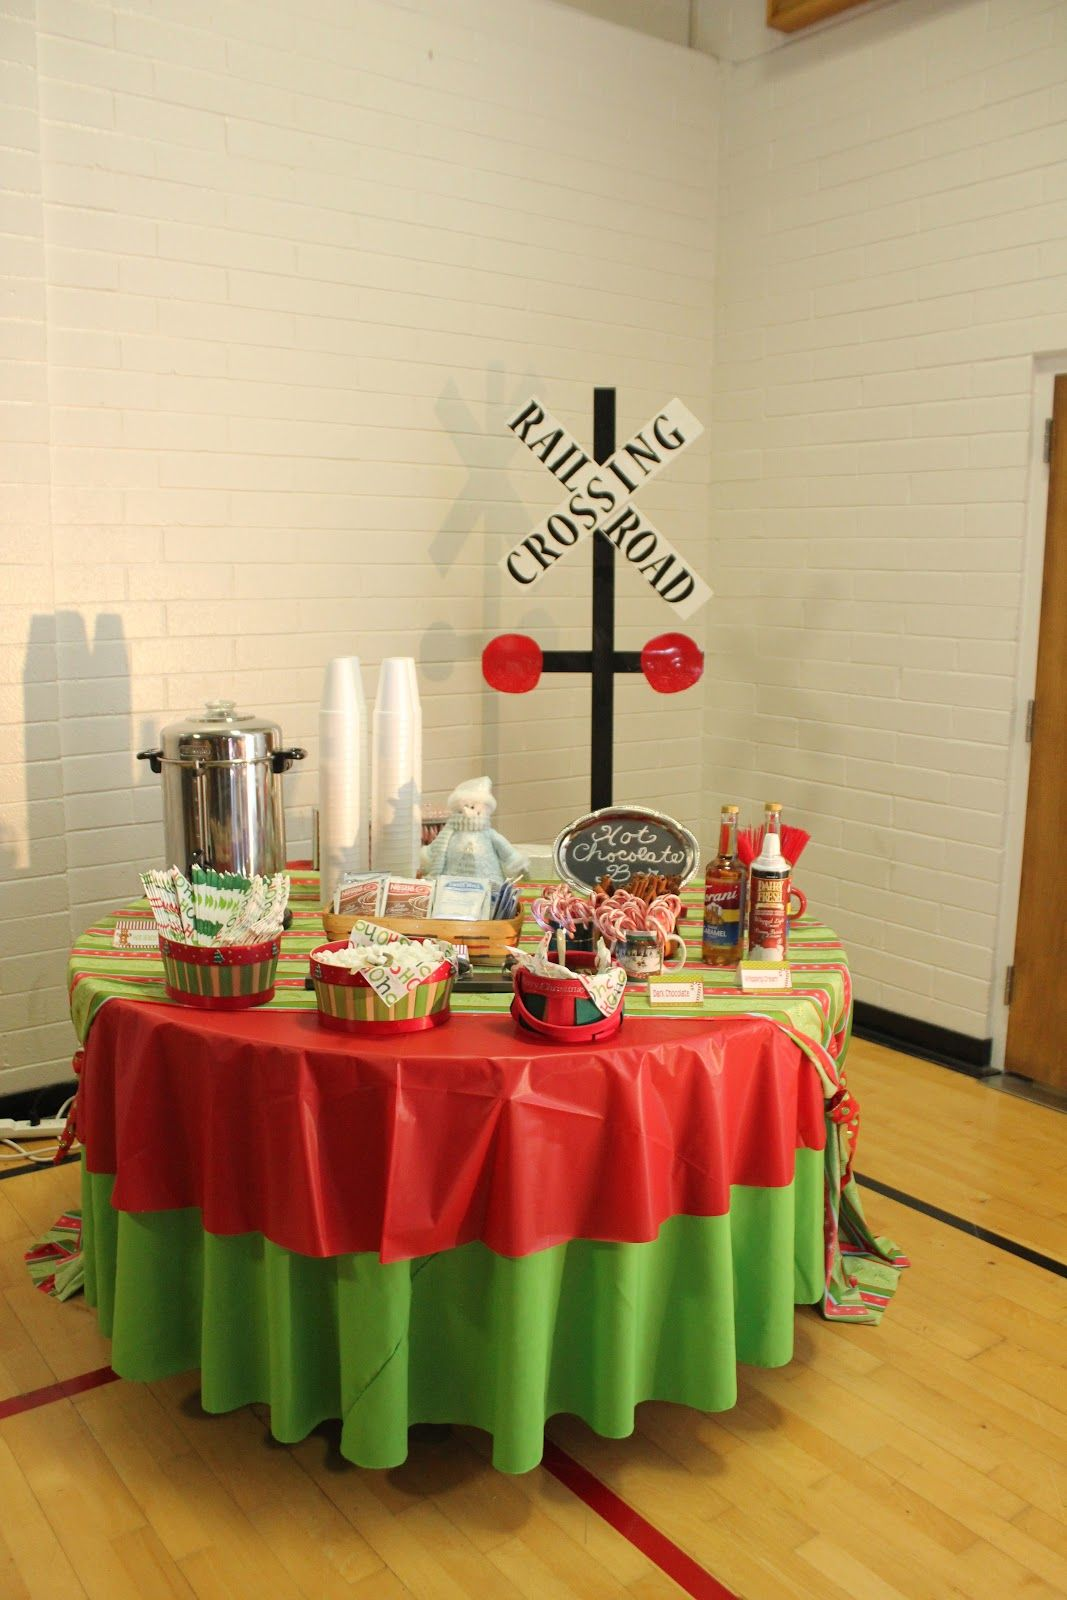 Delightful Polar Express Party Ideas For Christmas Part - 14: Some Good Ideas For Decorations Bridgey Widgey: Polar Express Party